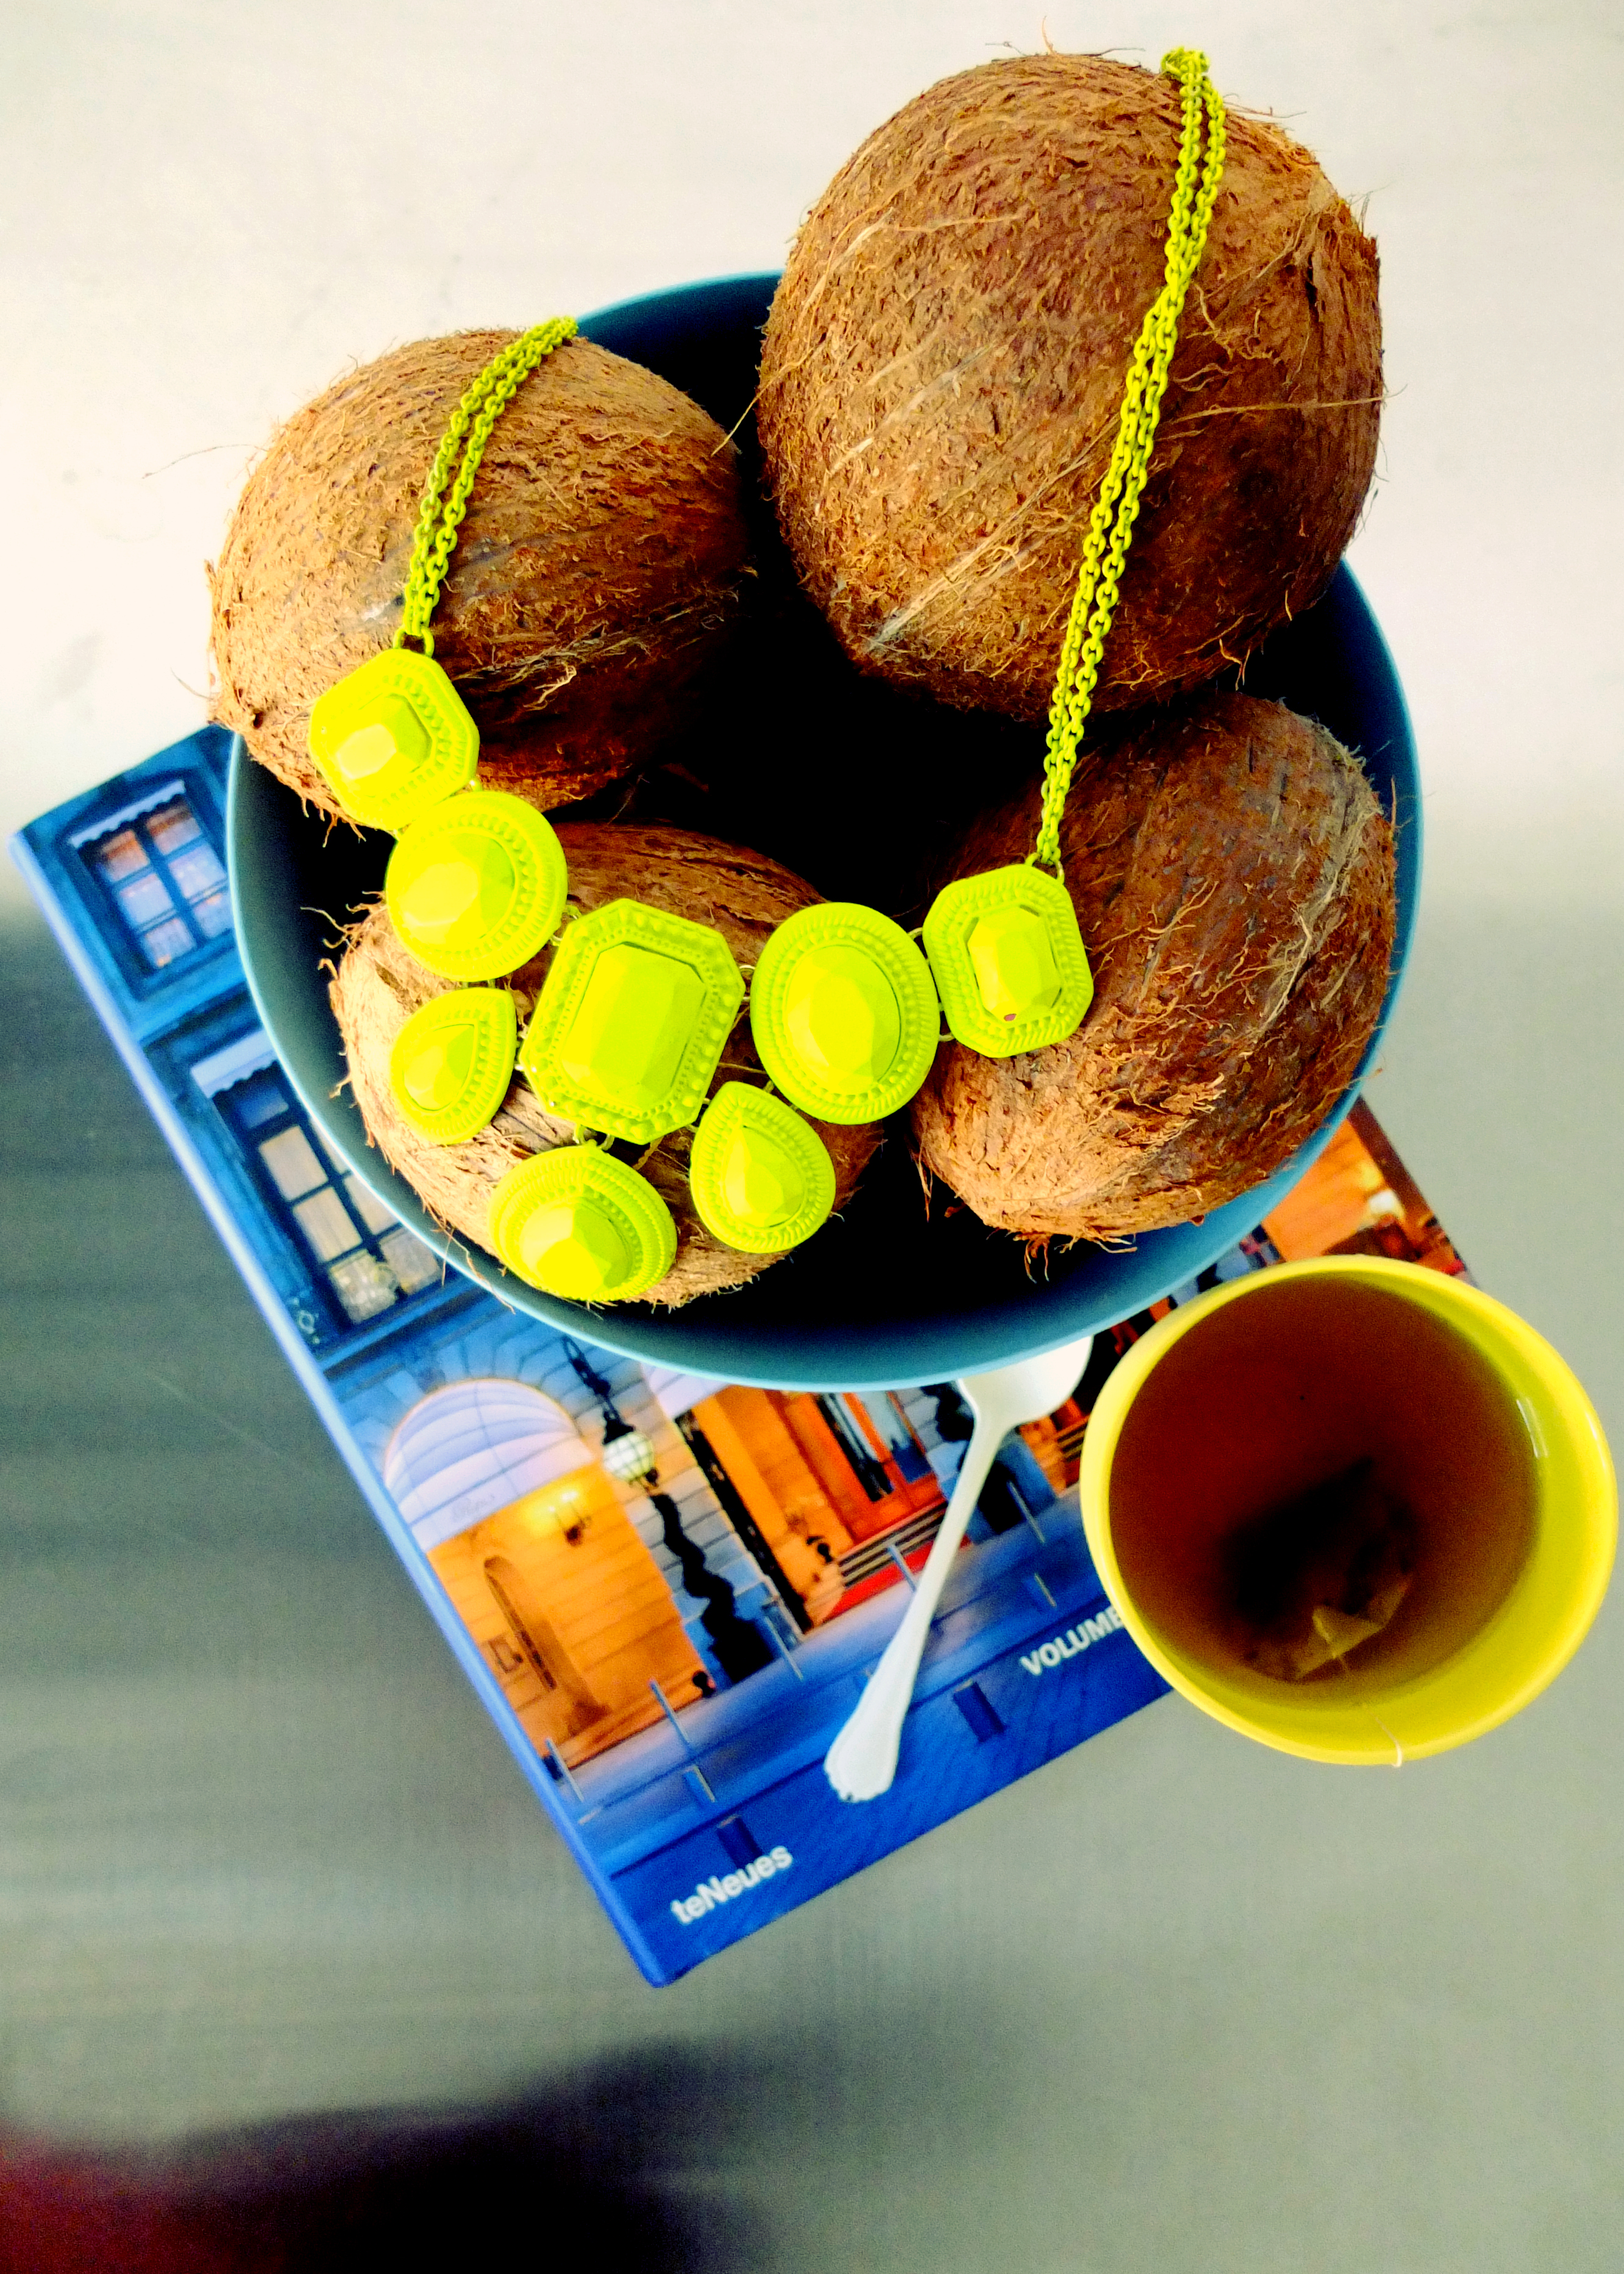 Coconuts and necklaces